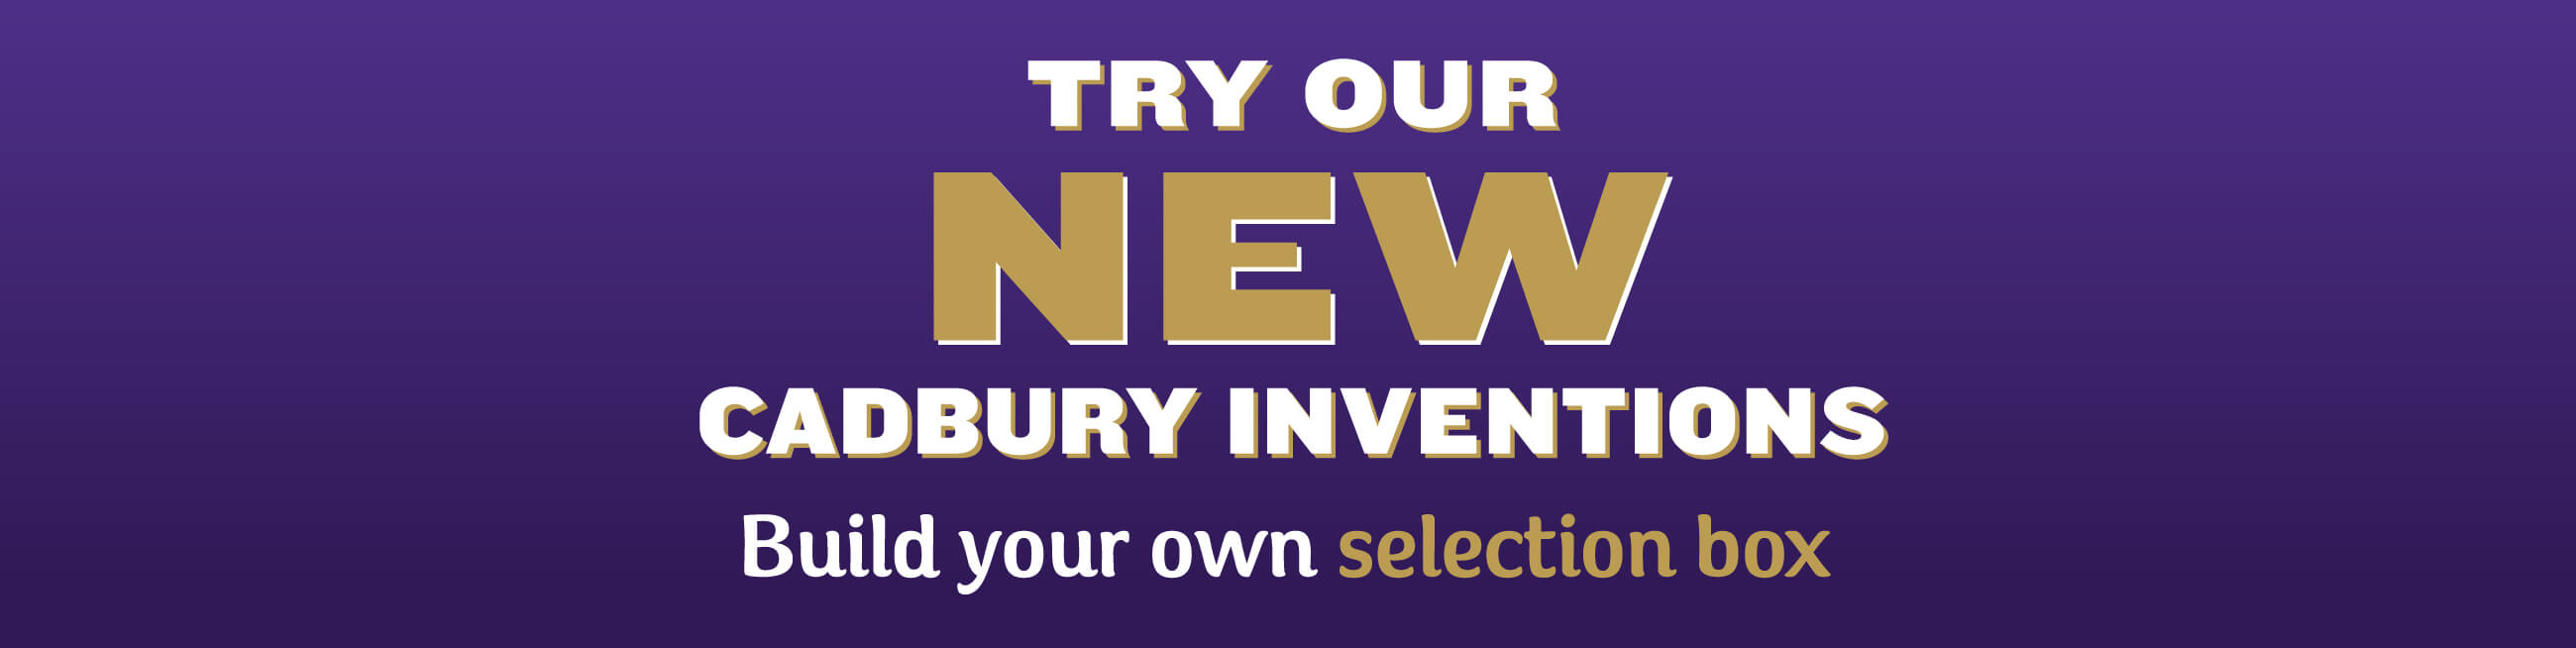 Try our new Cadbury Inventions.  Build your own selection box.